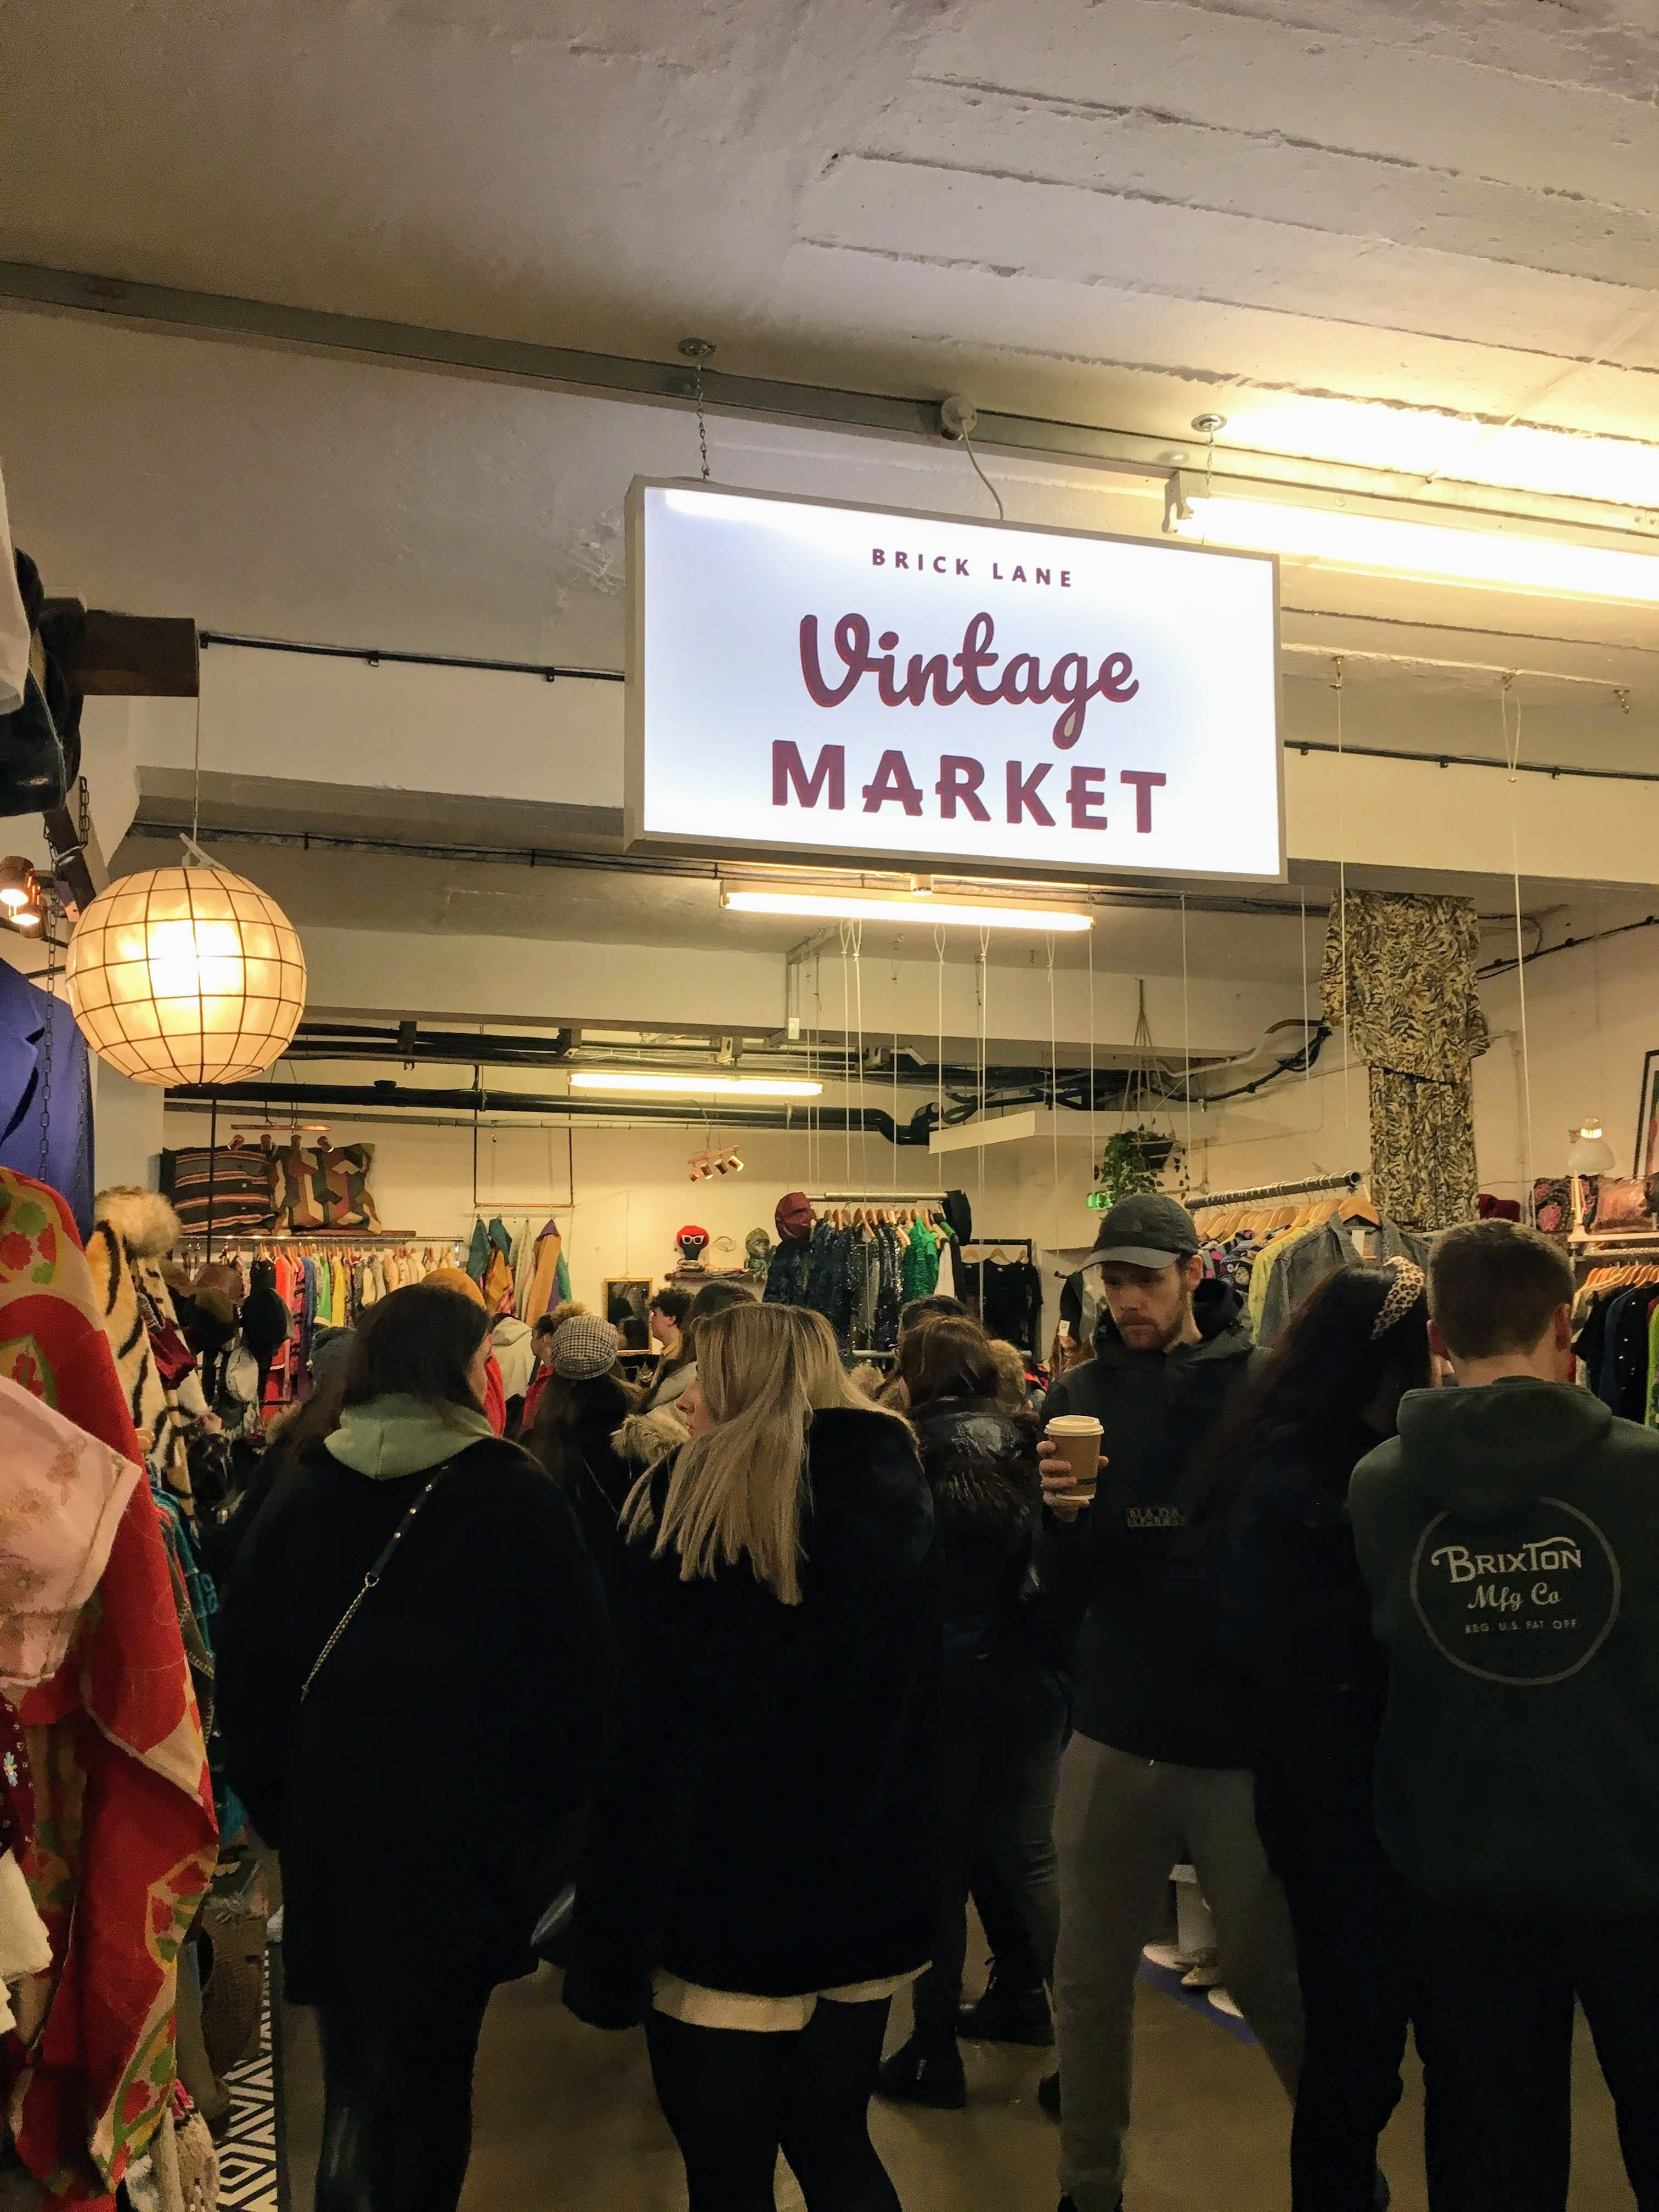 Brick Lane Vintage Market london england city guide